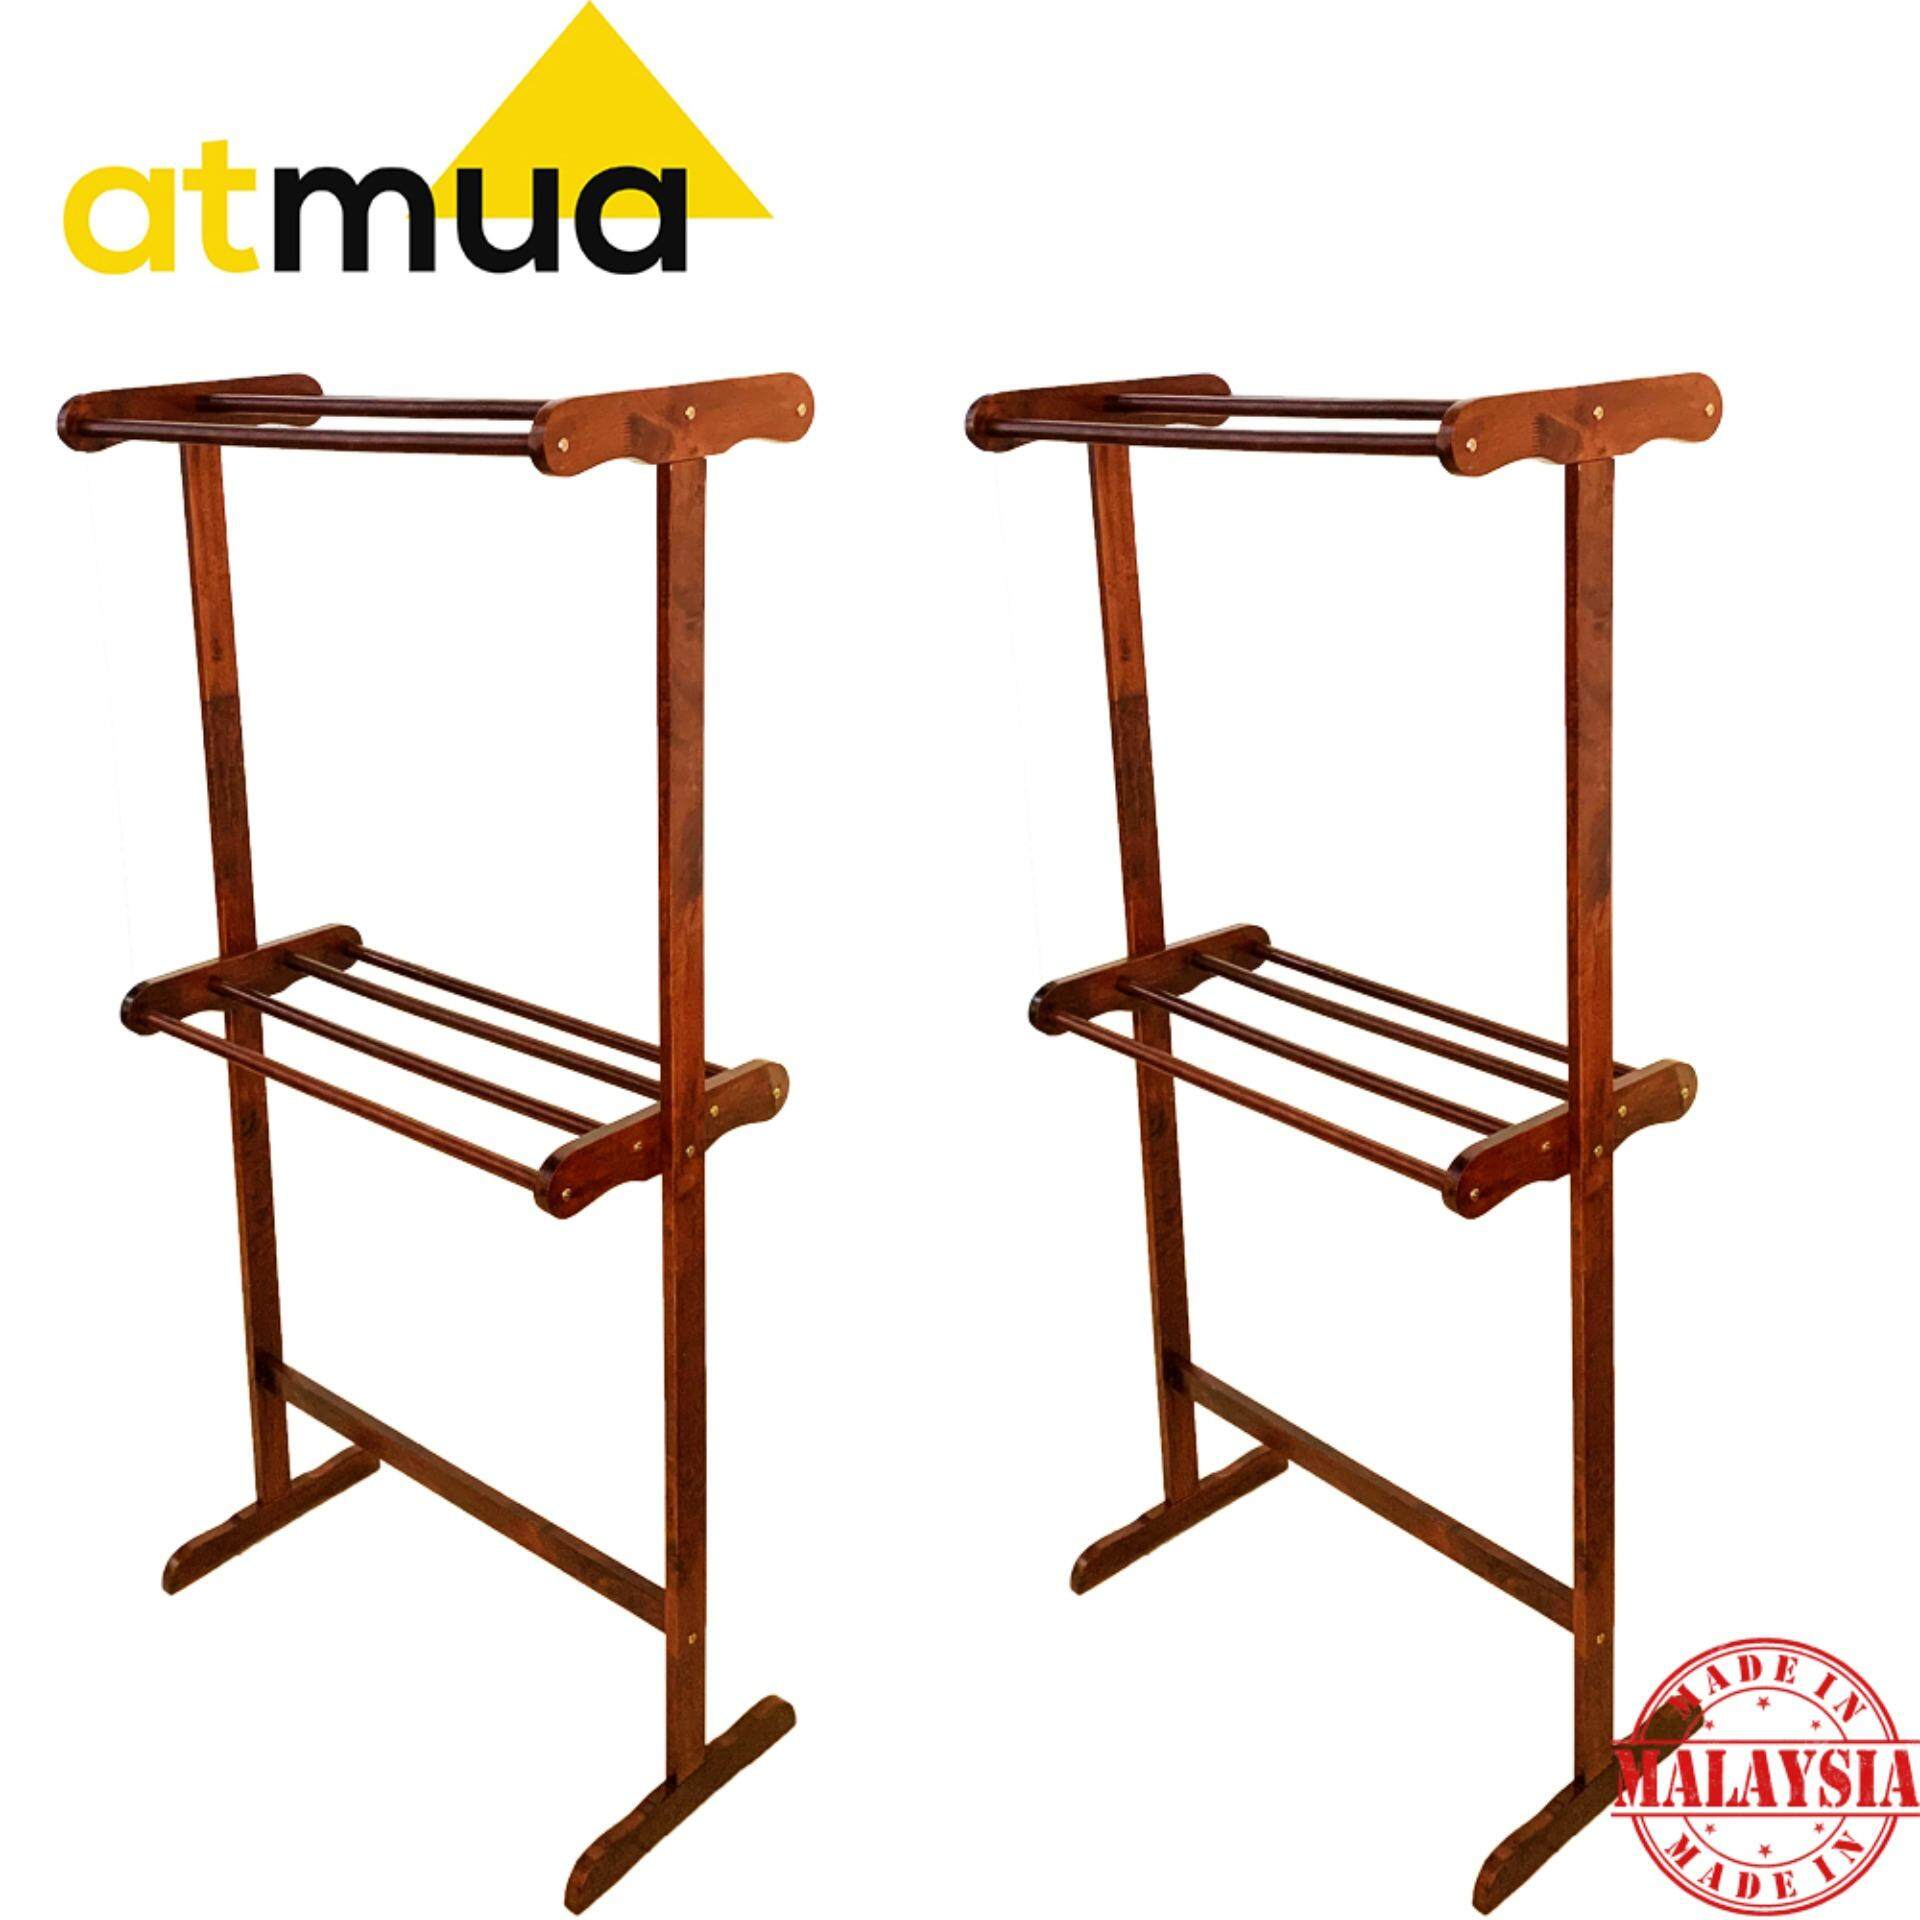 Atmua Habi Big Towel Rack - [Full Solid Wood] *2 Unit*